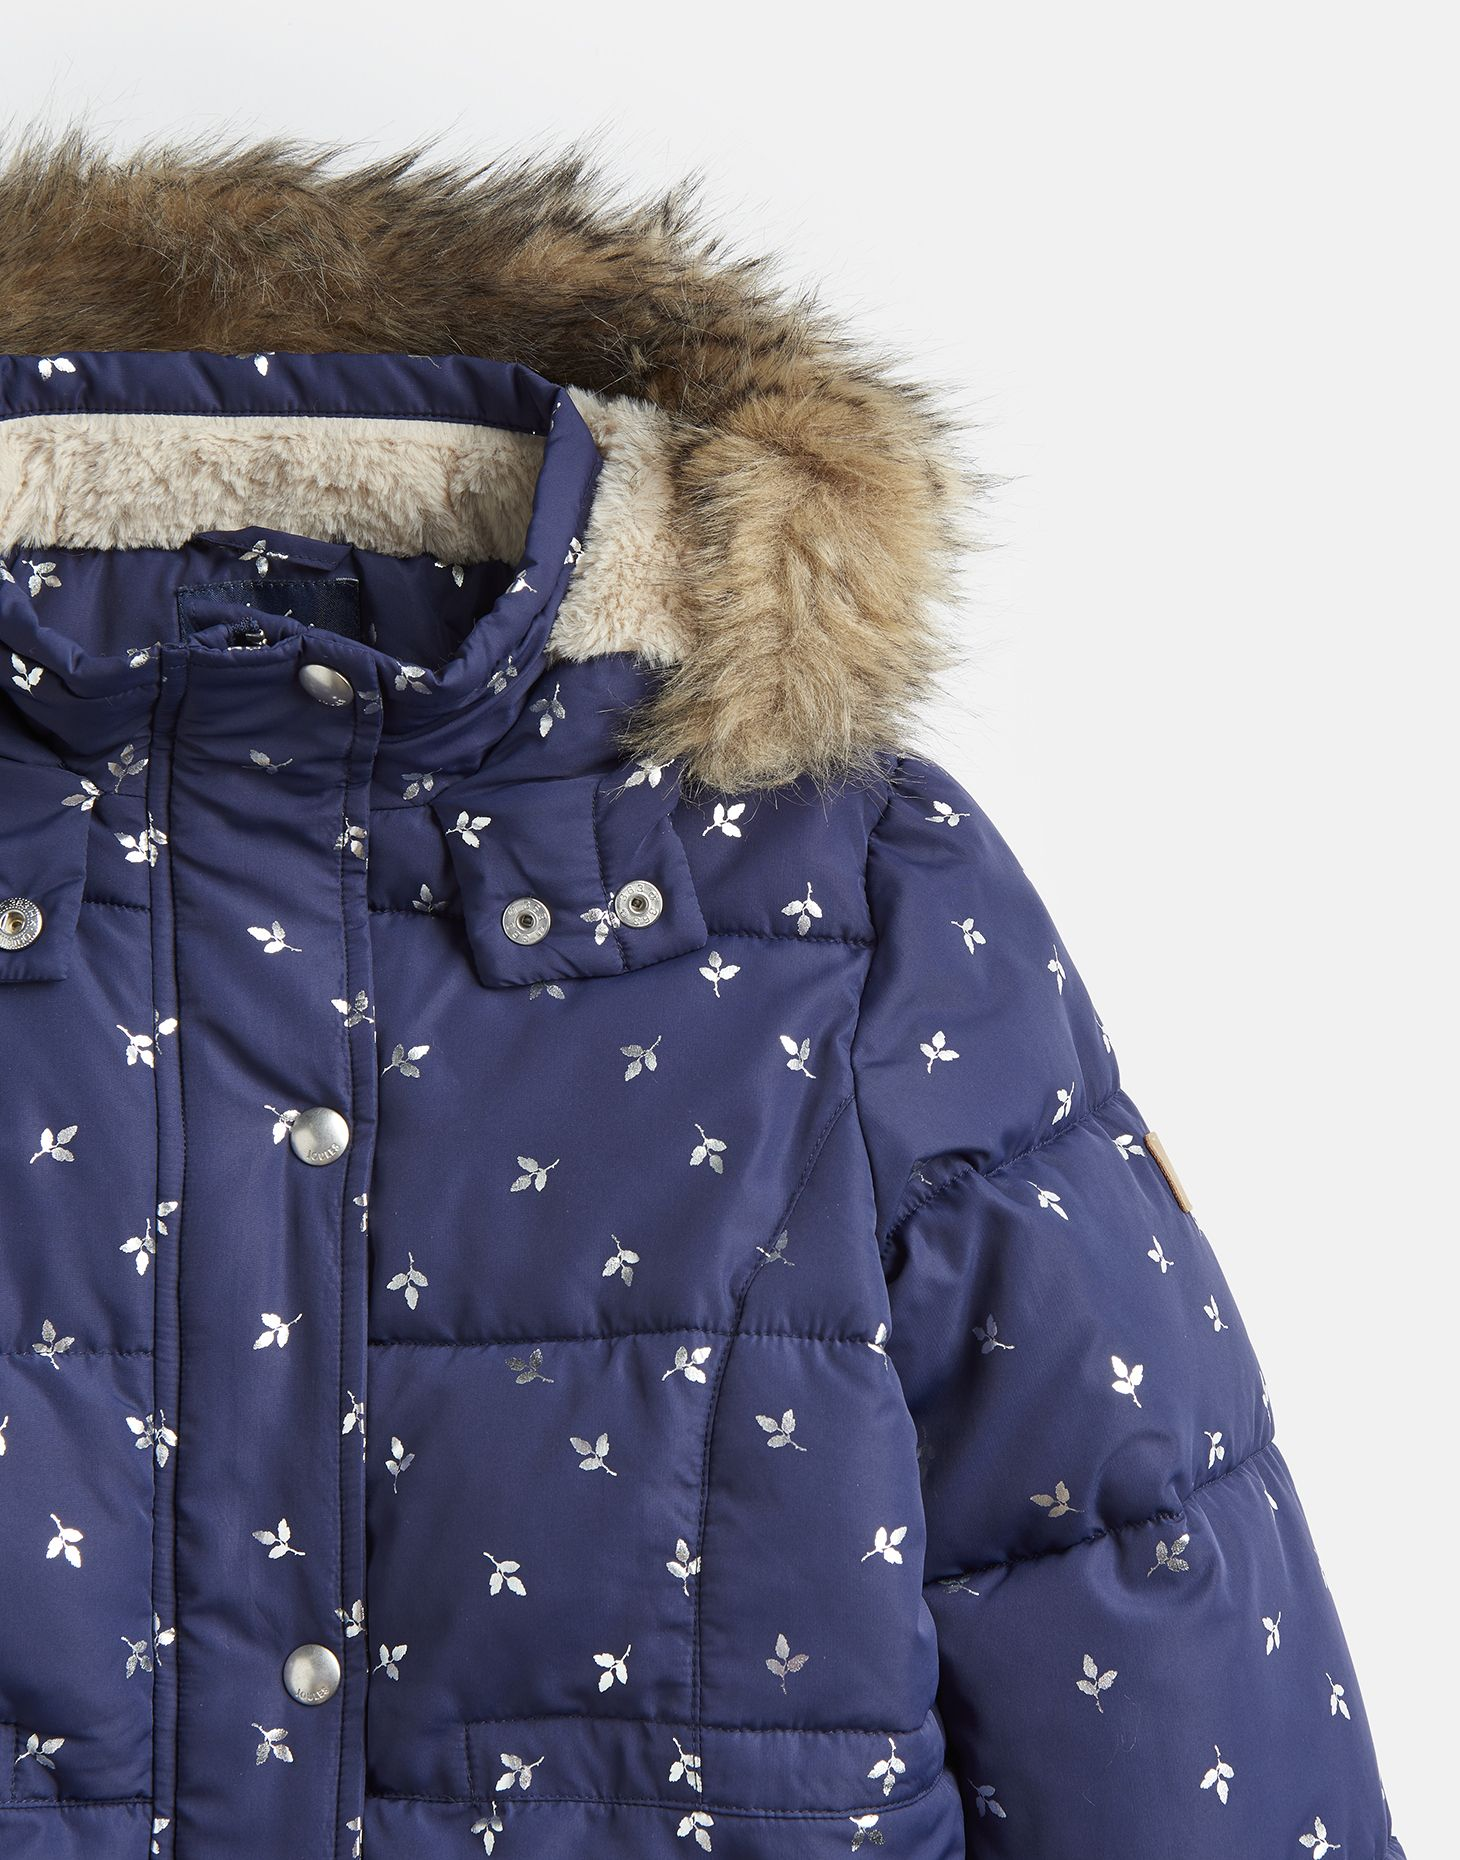 Details about Joules Girls Stella Faux Fur Lined Padded Coat 1 12 Years in NAVY SILVER LEAF